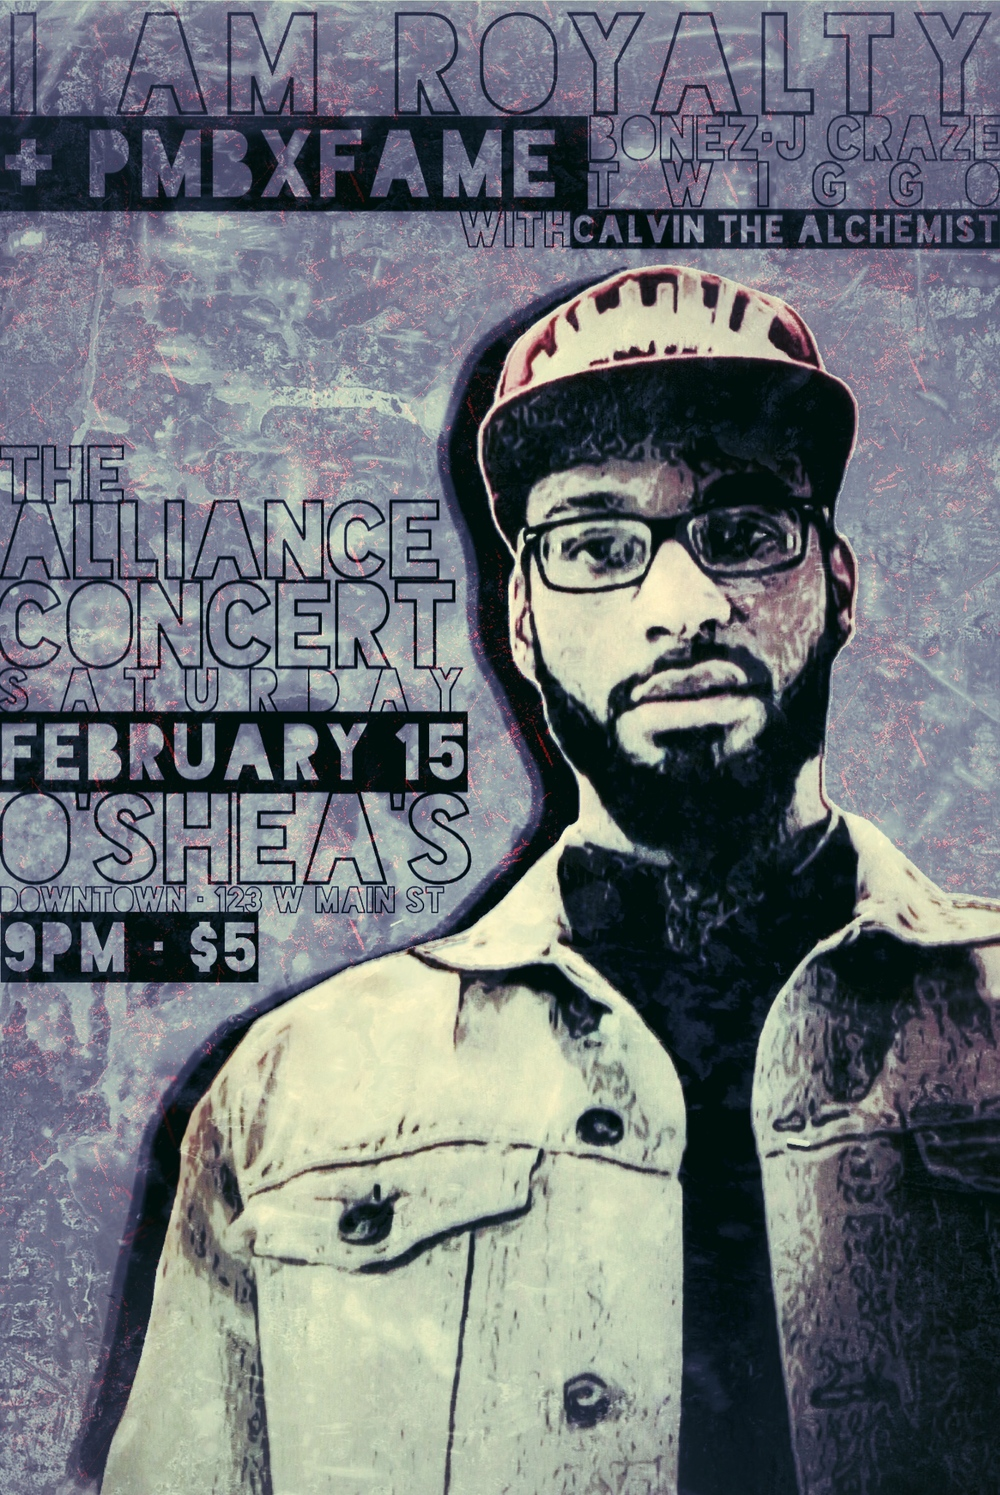 Come out and show your support at Bonez' next live performance: The Alliance Concert at O'Shea's Downtown in Louisville. Special performances will include the PMBxFAME family (Bonez, Twiggo, J Craze and Calvin the Alchemist). Show starts at 9:00 PM with a $5 cover at the door. 123 W Main Street, third floor. See you there!